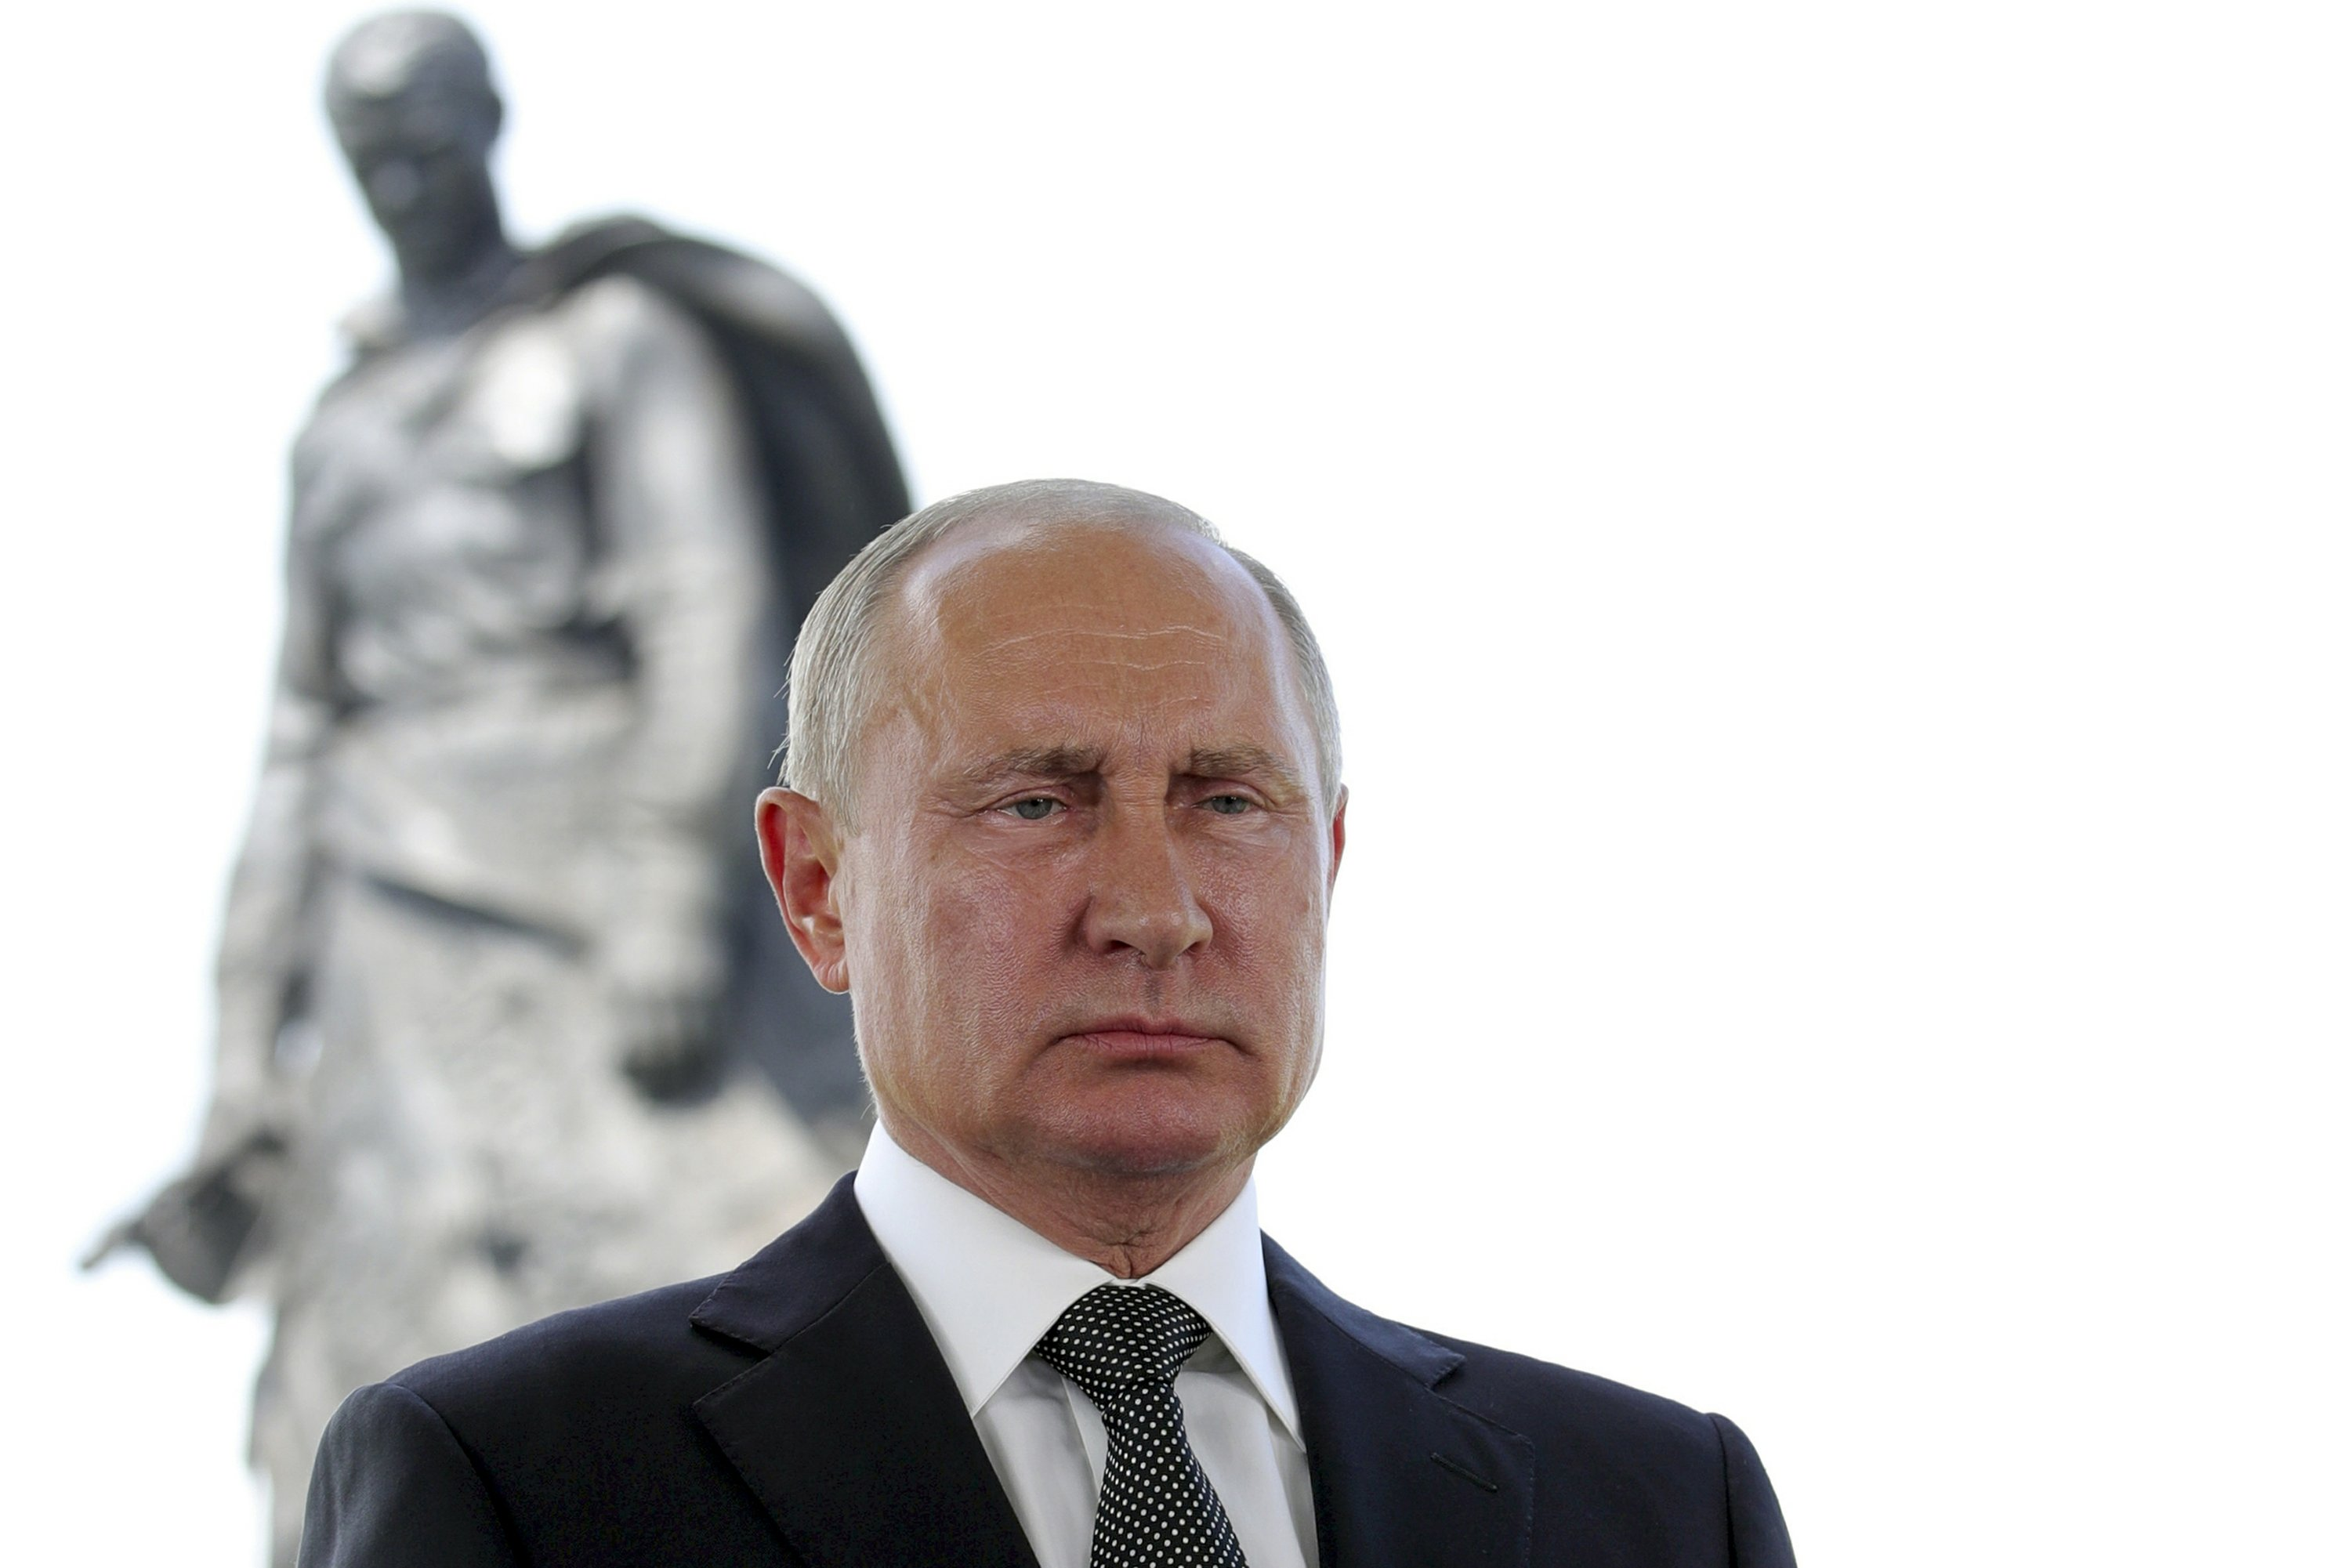 Putin Unveils Monument To Fallen Red Army Wwii Soldiers